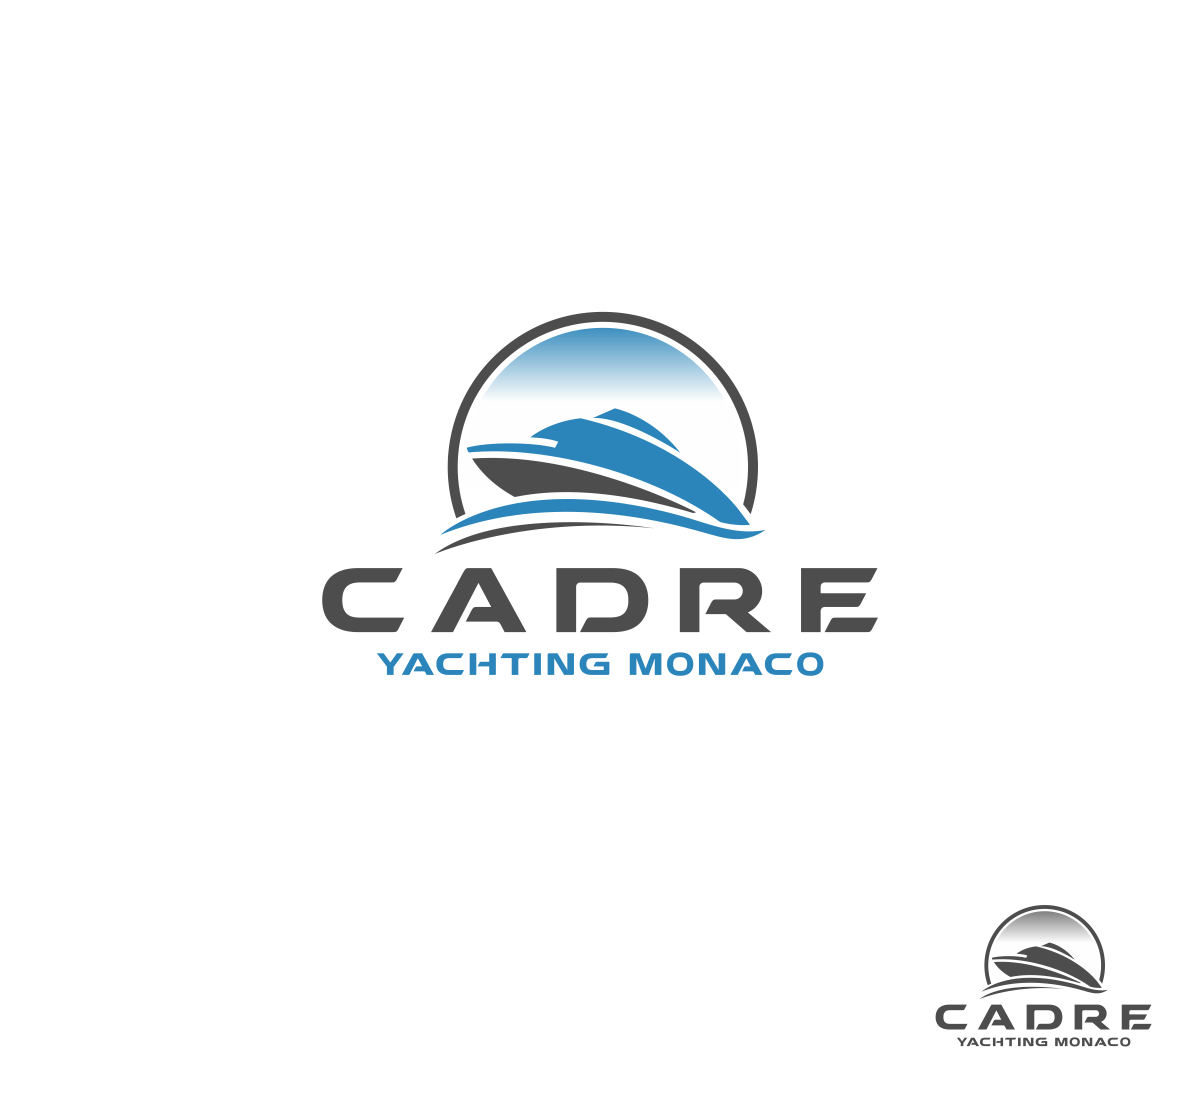 Logo Design by haidu - Entry No. 116 in the Logo Design Contest New Logo Design for Cadre Yachting Monaco.